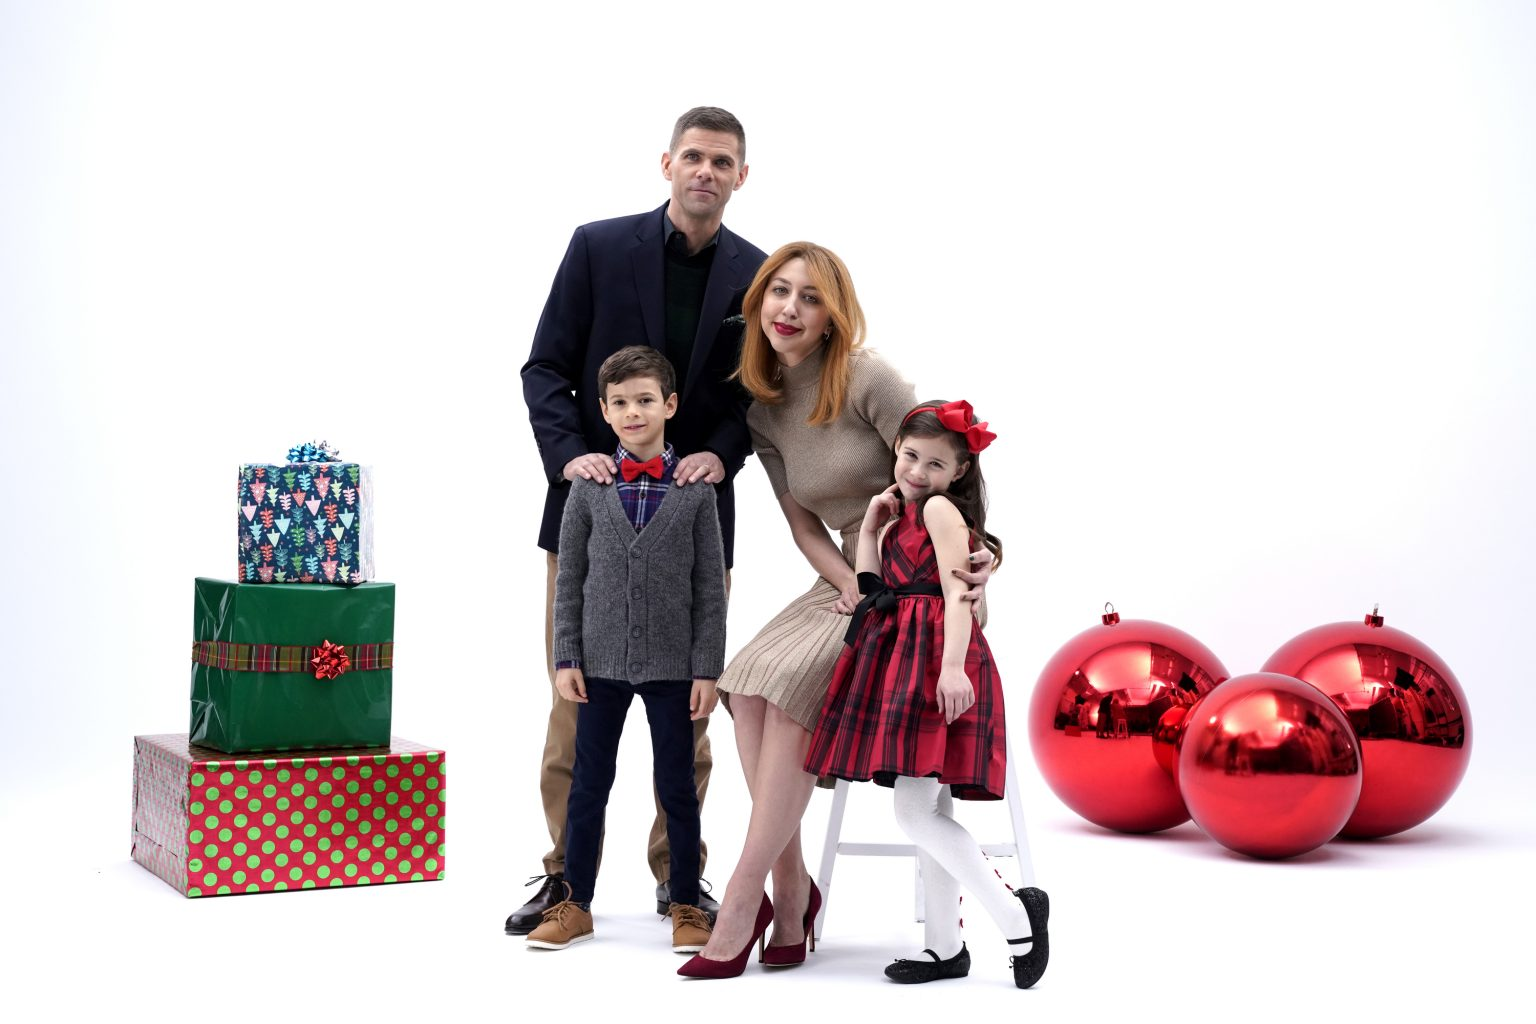 Macys 2020 Christmas Commericals SNL' Spoofs Macy's With Faux Holiday Ad Parents Will Find